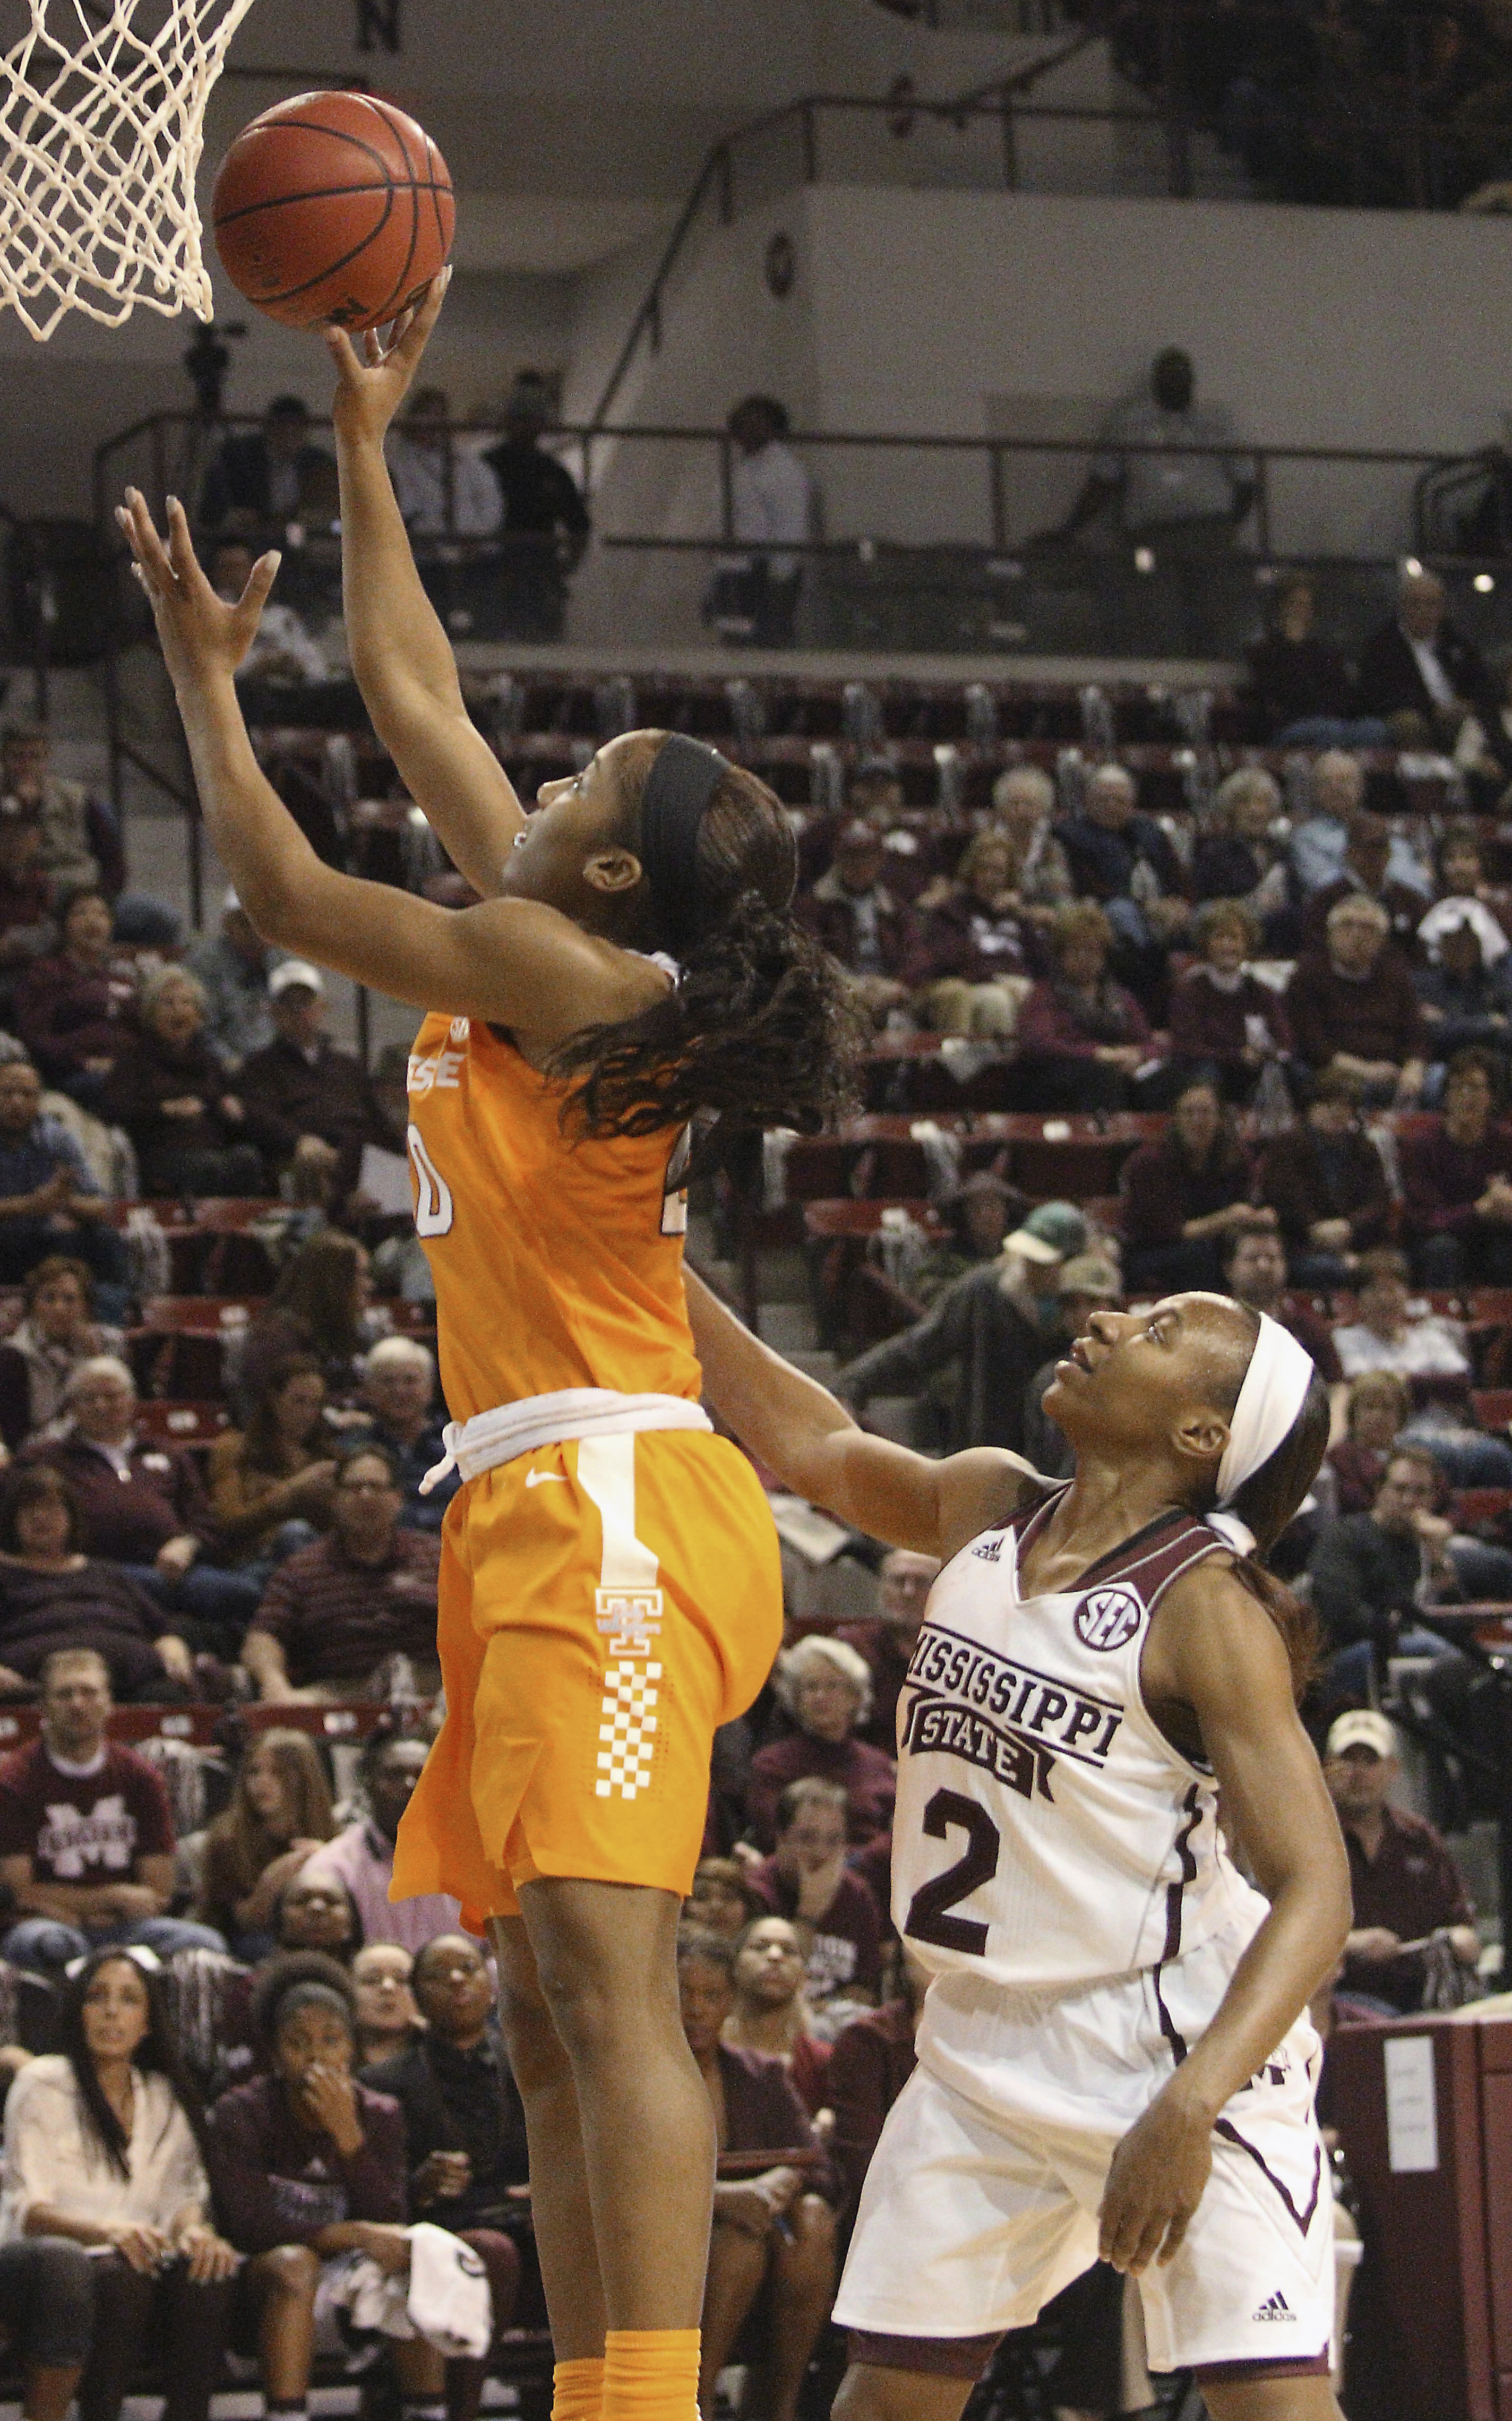 Tennessee guard Jordan Reynolds (0) shoots in front of Mississippi State guard Morgan William (2) during the first half of an NCAA college basketball game in Starkville, Miss., Thursday, Jan. 28, 2016. (AP Photo/Jim Lytle)